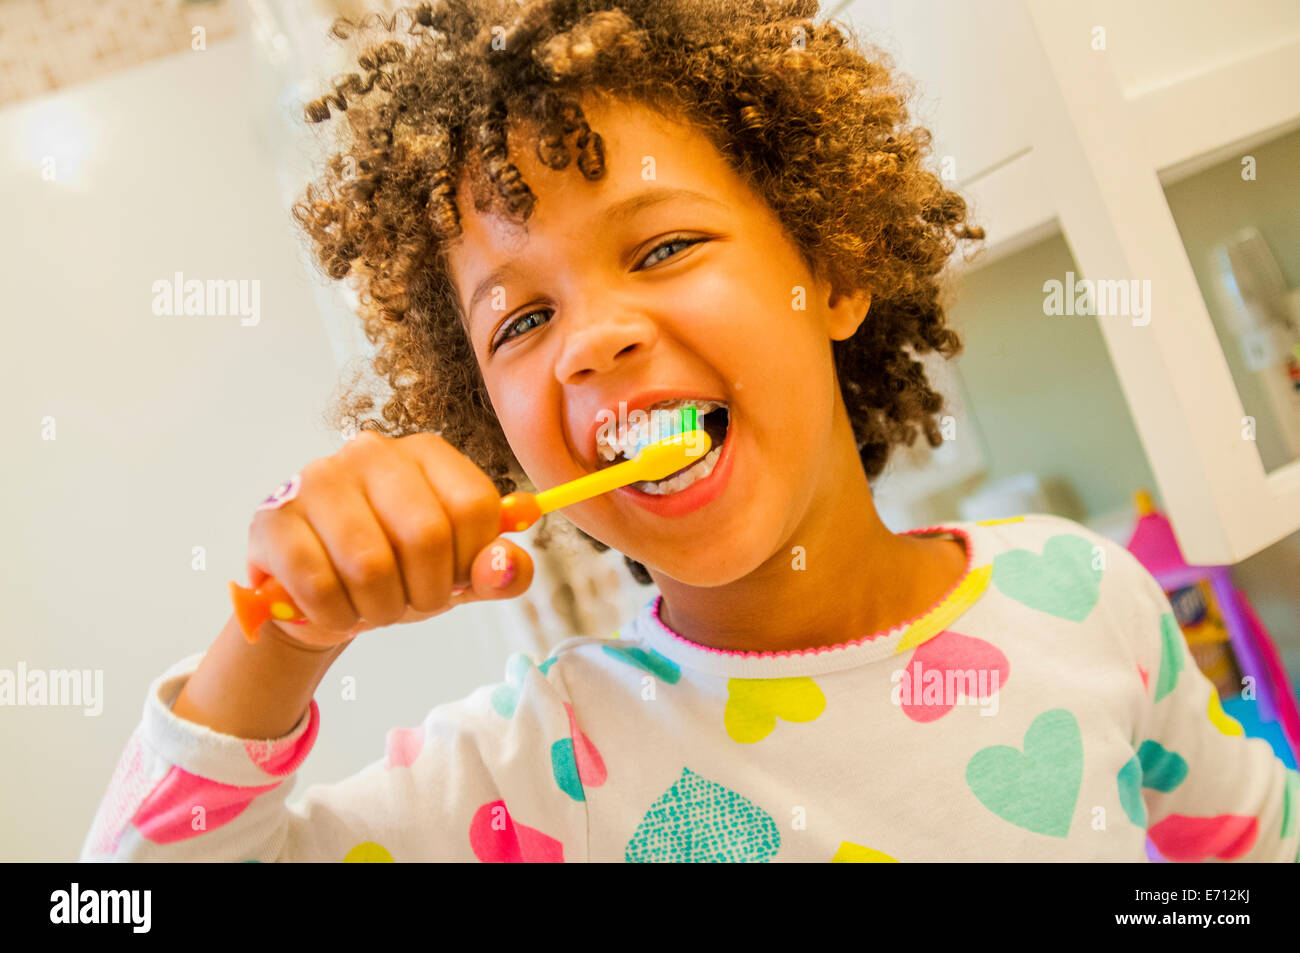 Portrait of smiling girl brushing teeth in bathroom - Stock Image